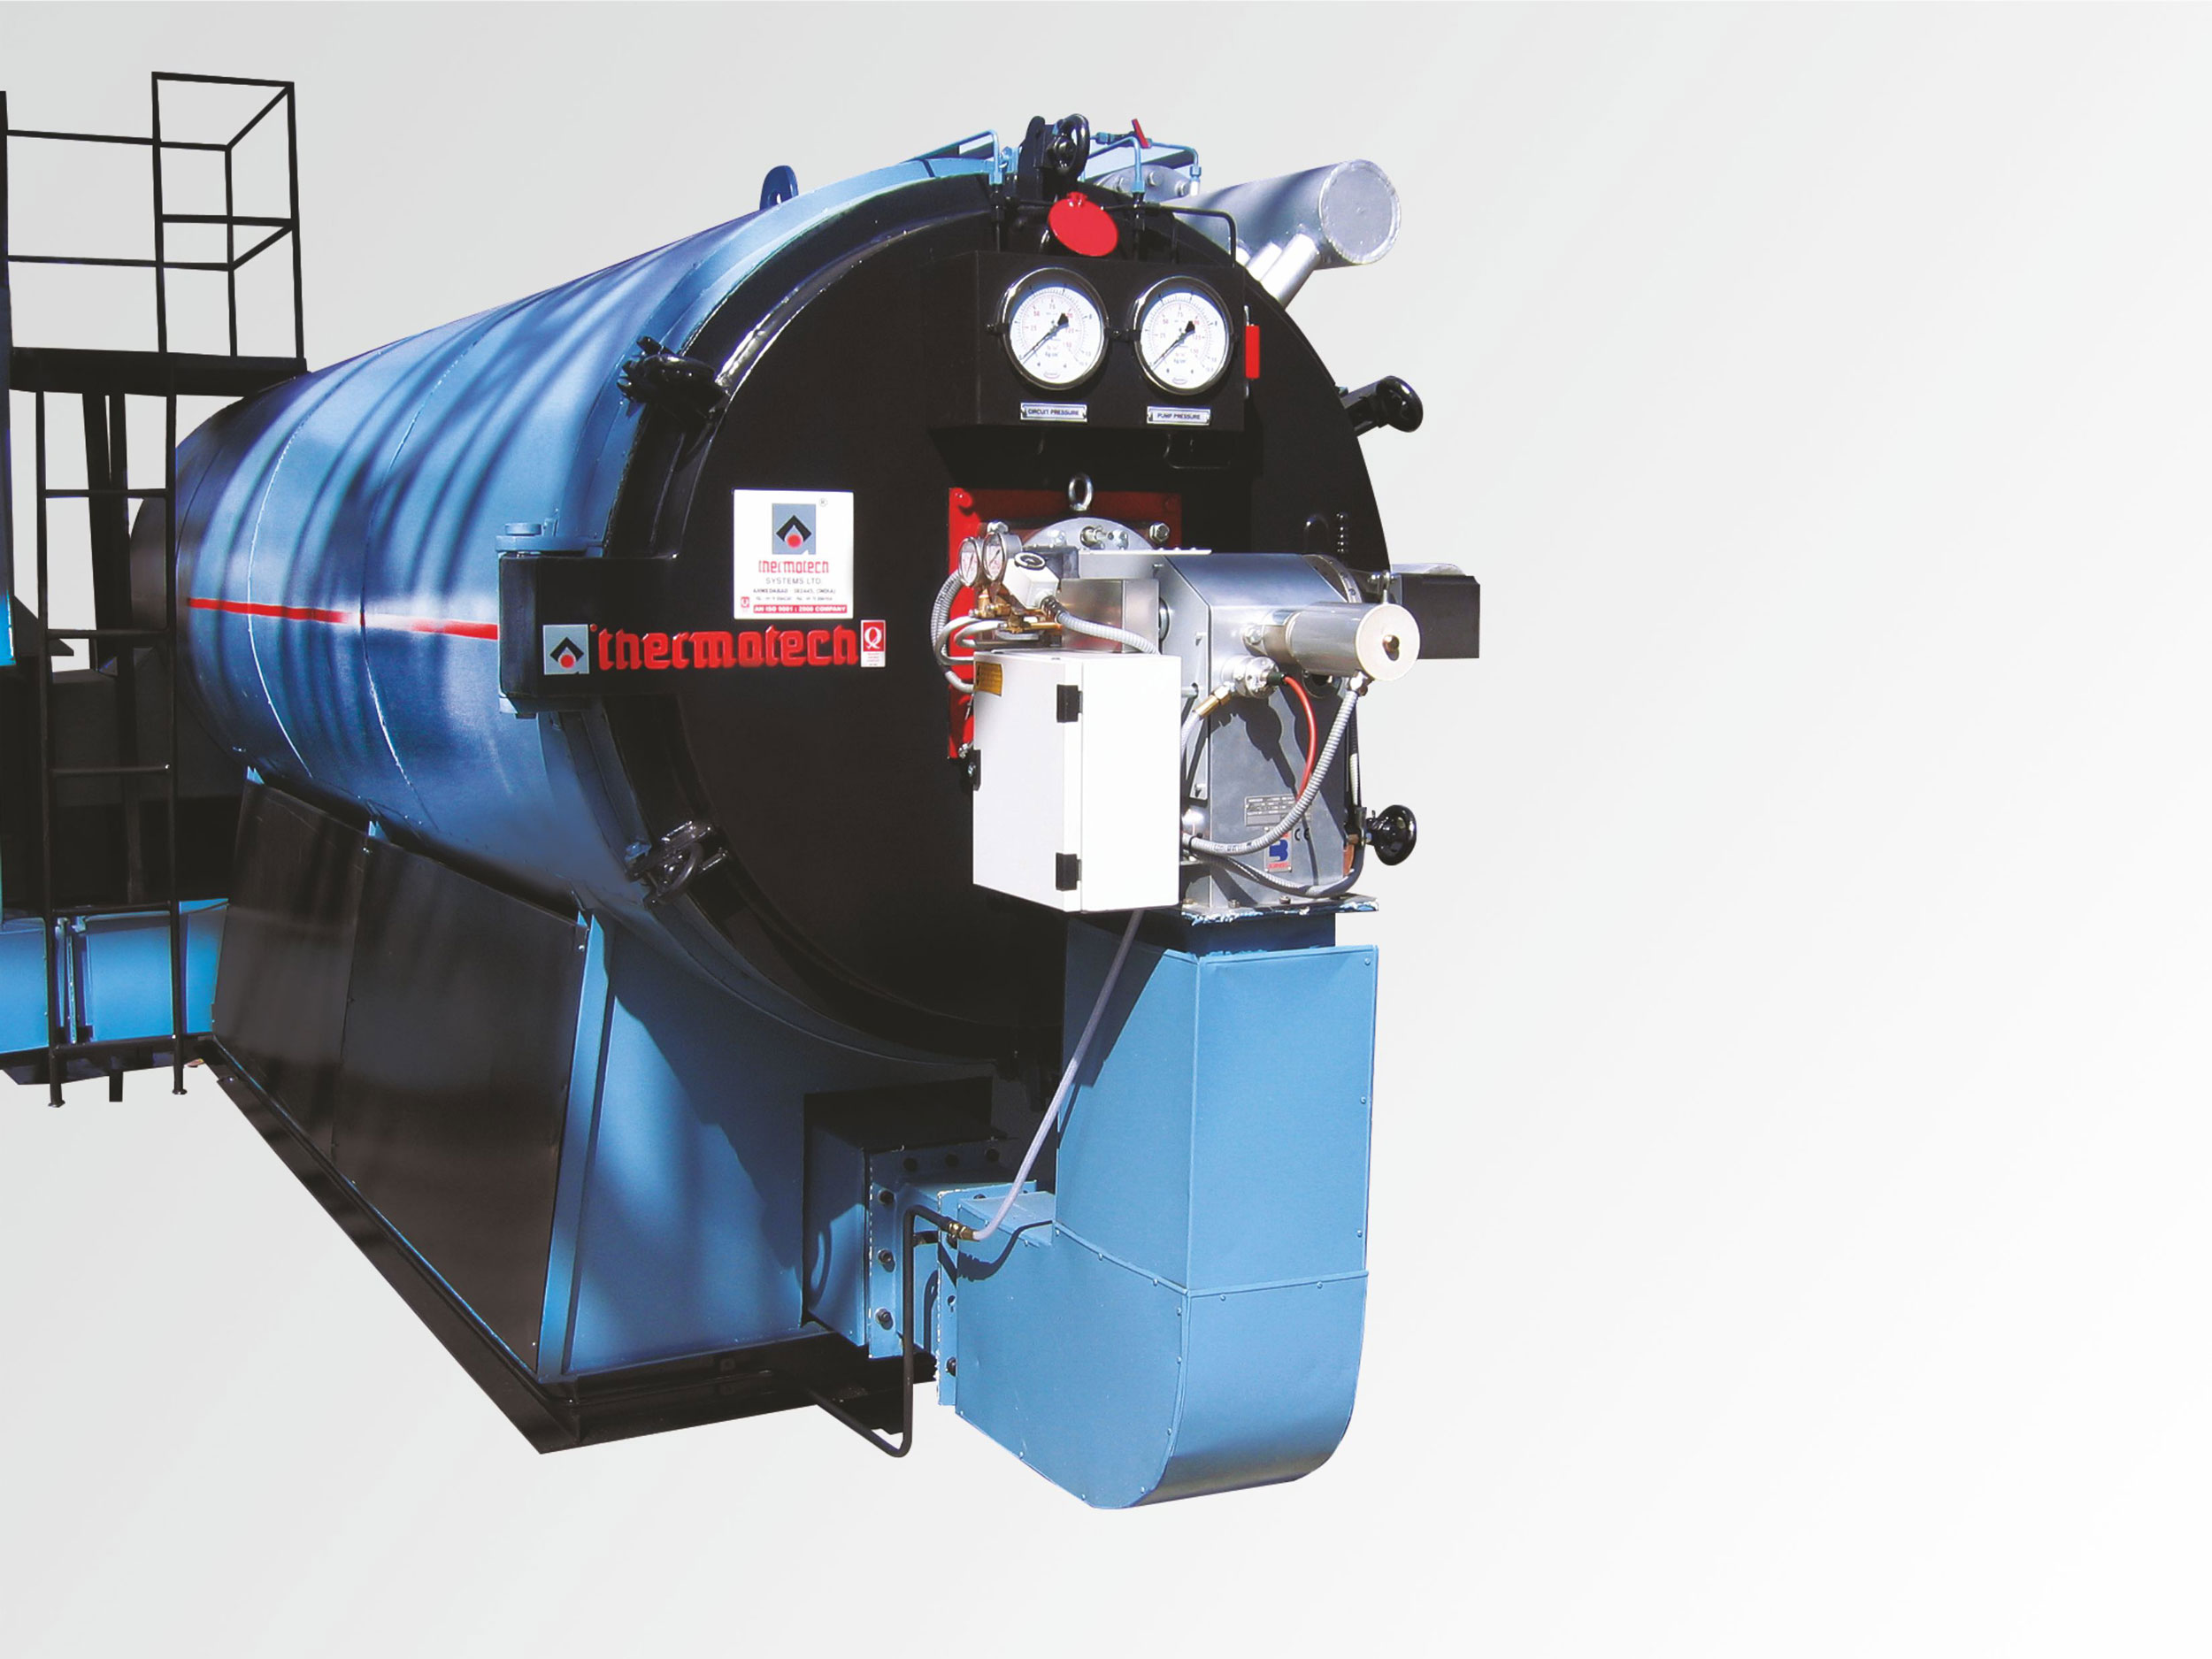 Backed by our well structured infrastructure unit, we are affianced in providing precision engineered Oil/Gas Fired Hot Water Generator. This generator is a safer and economical system which delivers hot water much faster than any other system. It's most ideal usage includes hotels, hospitals, residential complex, laundry, dairy industries, etc., where continuous hot water supply is essentially required. The offered generator is efficiently manufactured using standard quality components and advanced machines in complete sync with defined industry standards. Additionally, the offered Oil/Gas Fired Hot Water Generator is stringently tested on certain parameters under the direction of our deft quality controllers.  Features: Energy efficient Trouble free functioning Easy to operate Longer service life  The WATERTHERM is a very compact fully automatic packaged hot water generator in ready to install condition and can be installed where ever space is available. It does not require any special room like boiler house. It falls outside the purview of Indian Boiler Regulations. WATERTHERM is a safer and economical system which delivers hot water much faster than any other conventional system. It's most ideal usage includes HOTELS, HOSPITALS, RESIDENTIAL COMPLEX, LAUNDRY, DAIRY INDUSTRIES, etc. where continuous hot water supply is essentially required. WATERTHERM system is available in wide range of heat output from 0.1 Mkcals/hr. to 15 Mkcal/hr.,  A New Perception In Quality Thermotech Established Back In 1988, Is Today A Leading Industry In Process Heating Systems.  The Great Impetus Lies In The Hard Work, No Quality Compromise, Implementing Latest  Technologies And Above All Incredibly Environmental Compliance.  A Large Network In India Provides Prompt And Assured Quality Service To Our Valued Clients Within No Time.  Watertherm - A New Concept In Hot Water Boilers Heat Exchanger Of Hot Water Generator Are Fabricated Out Of Boiler Tube Bs 3059 Of Adequate Size, Accurately 